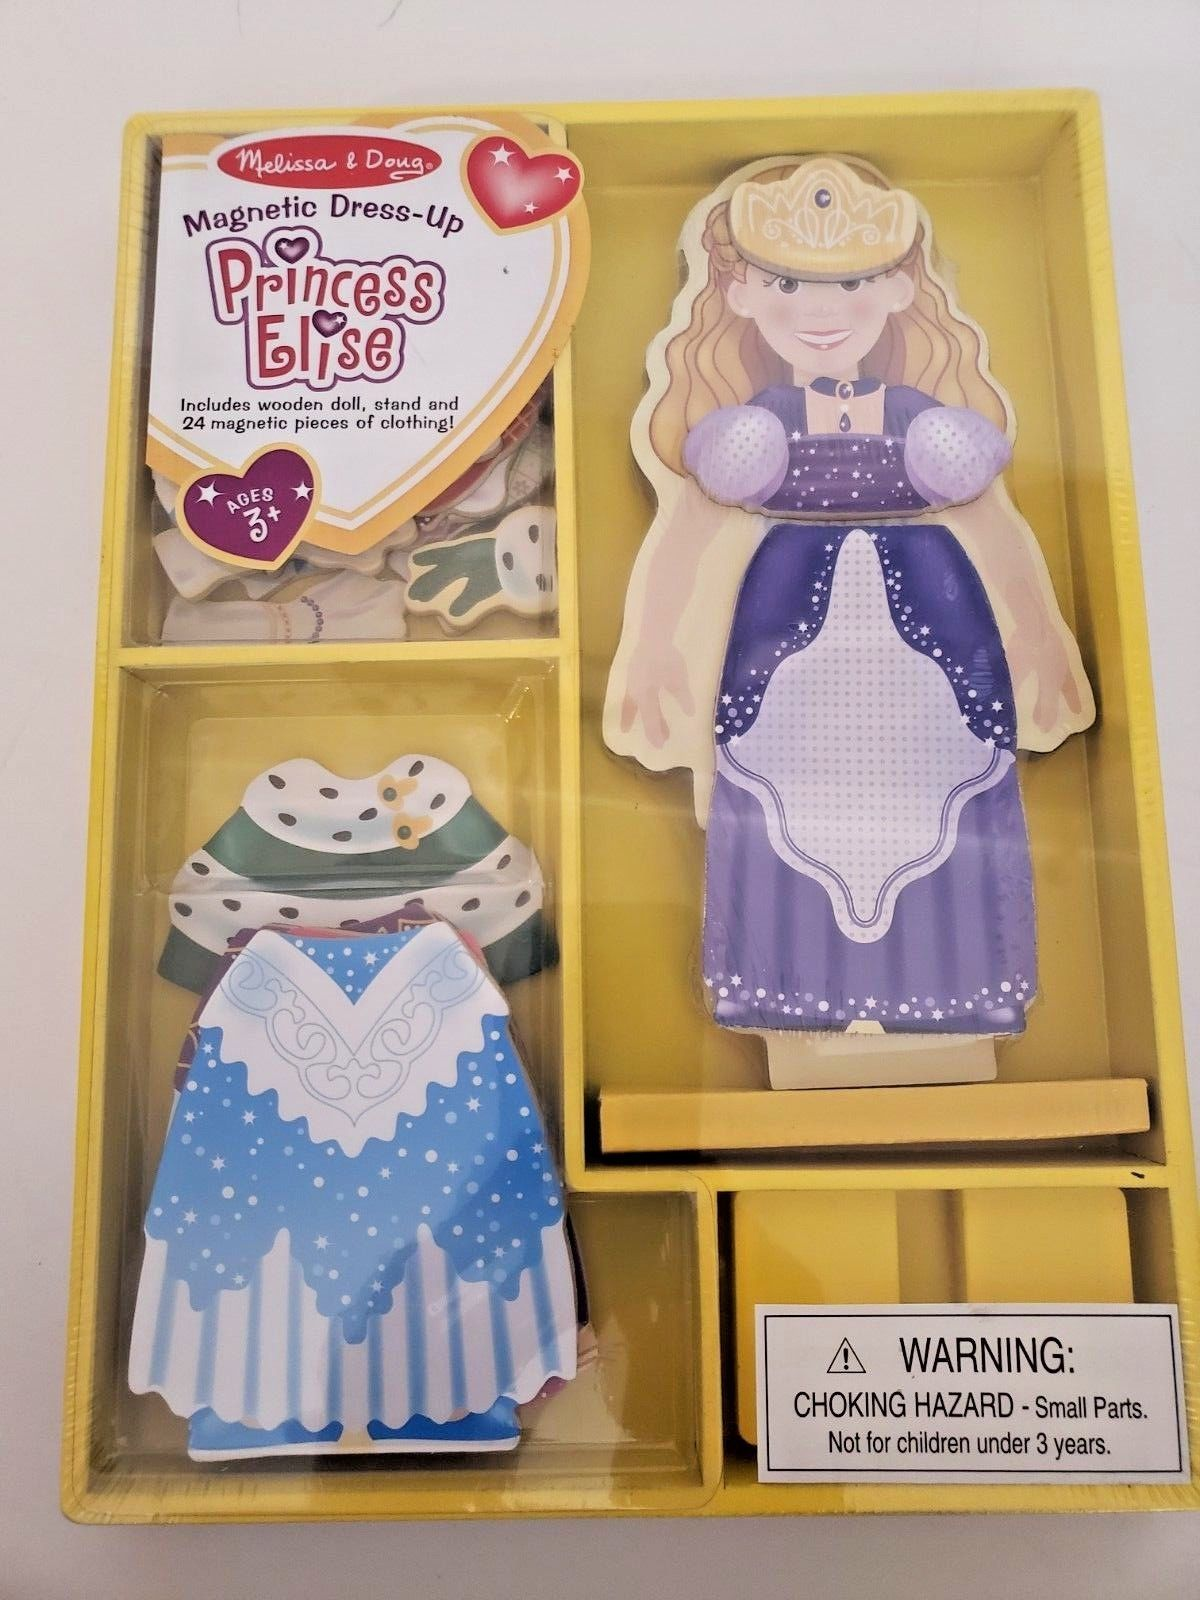 Melissa and Doug Brand New Magnetic Dress up...Princess Elise!!! image 2